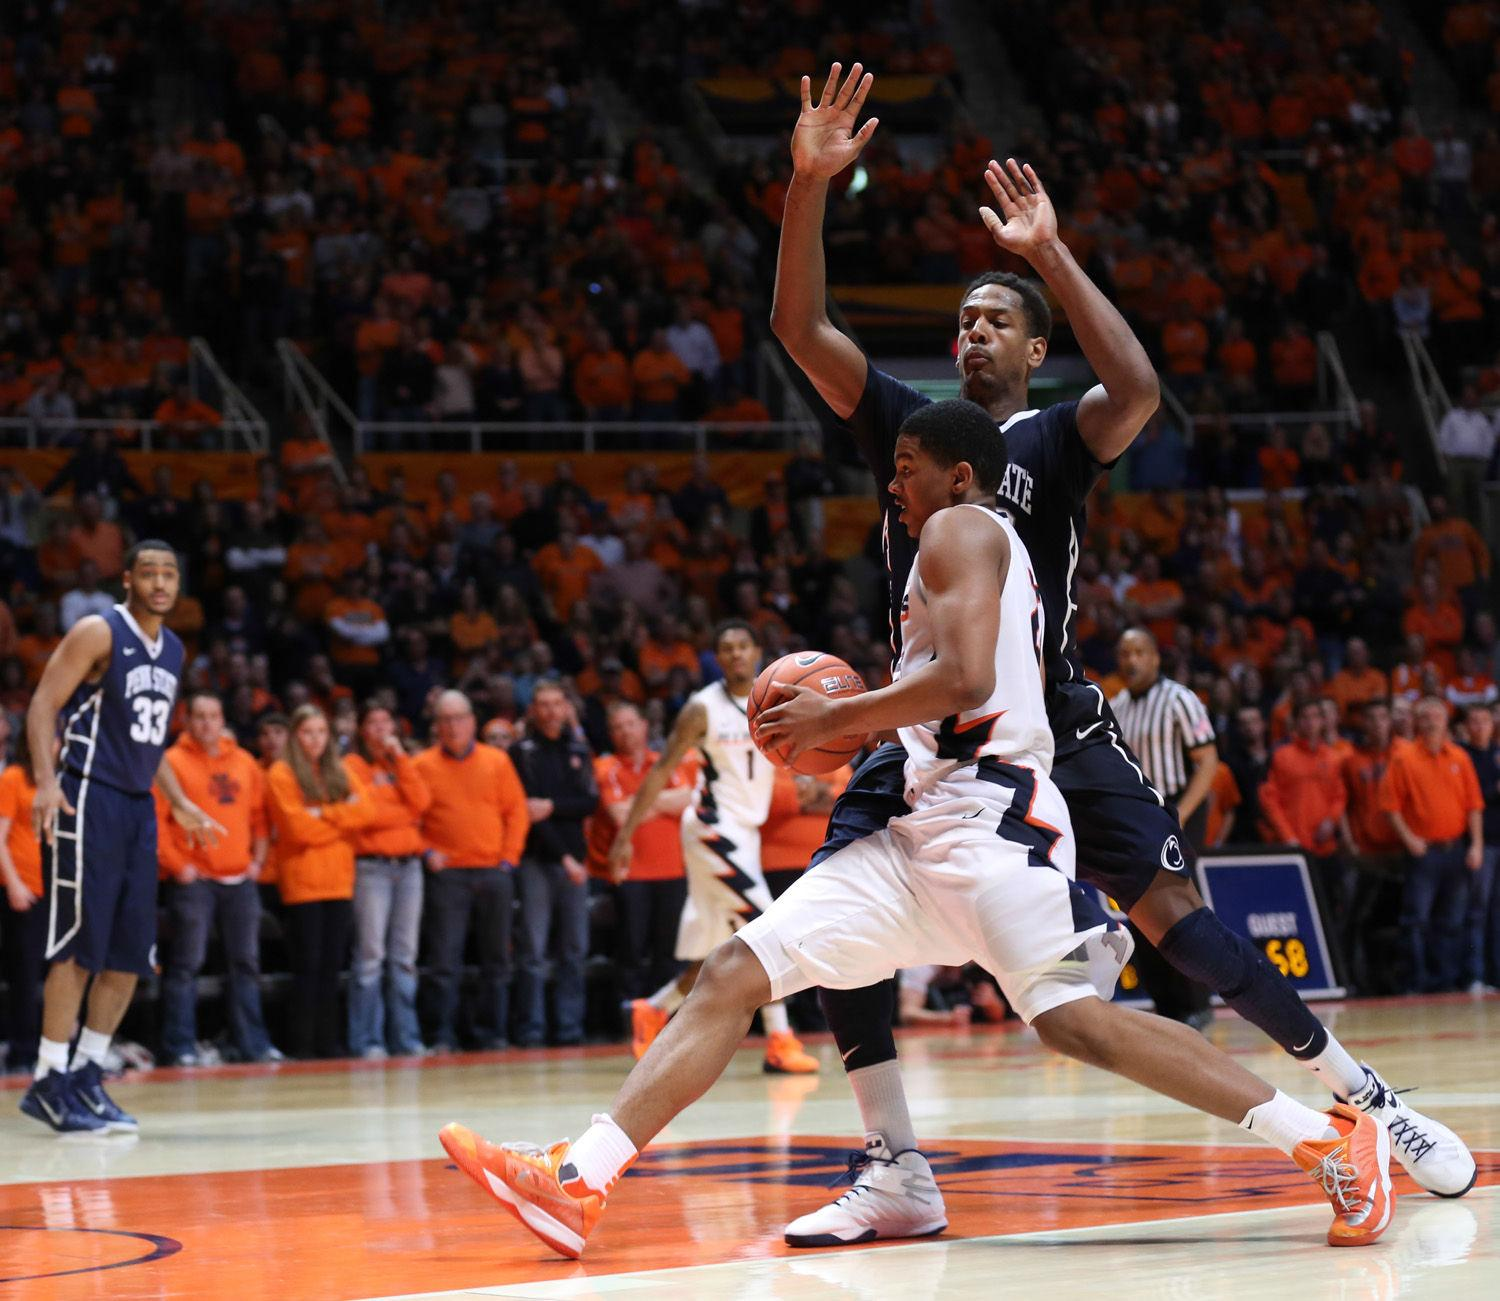 Illinois' Malcolm Hill (21) drives into the paint before making the game-winning basket during the game against Penn State at State Farm Center on Jan. 31, 2015. The Illini won 60-58.